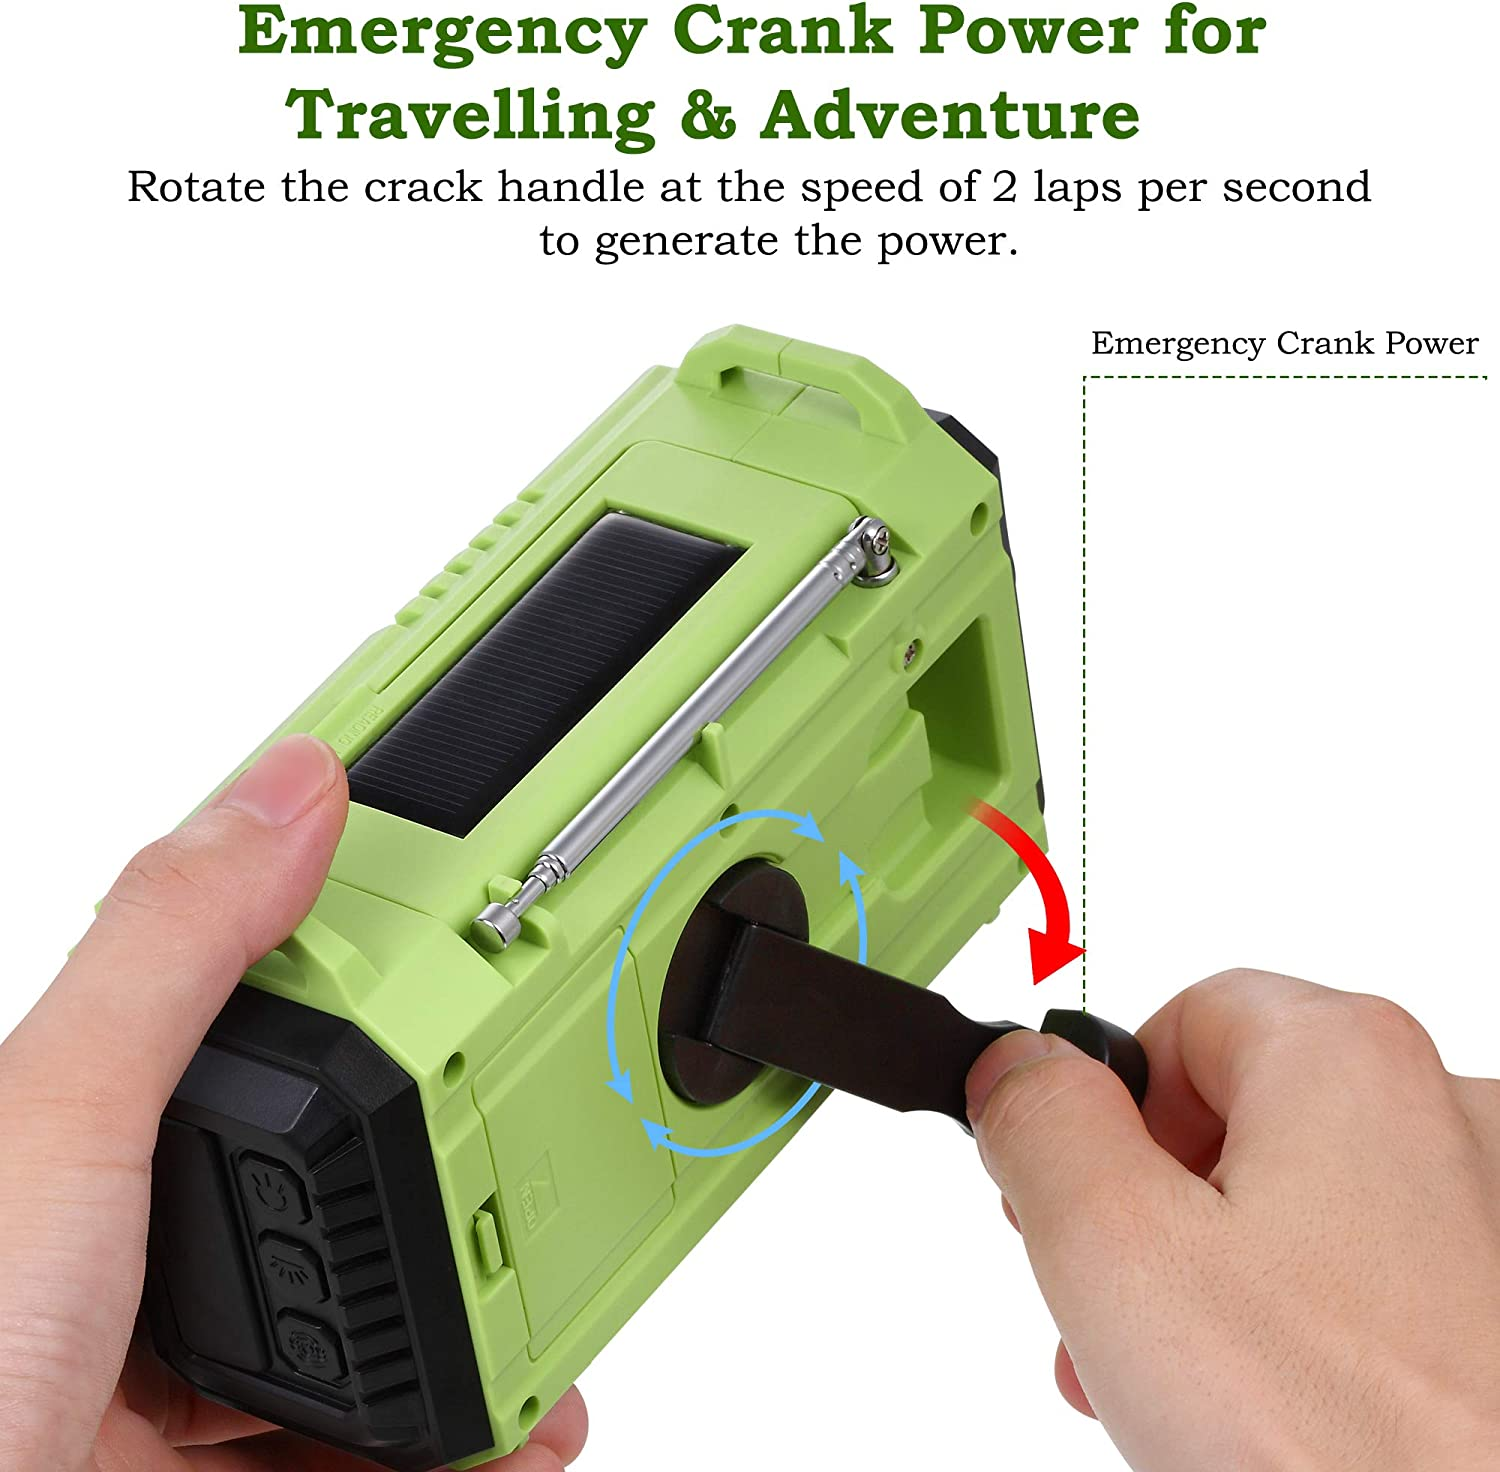 Portable 5-Way Weather Radio With Solar NOAA//AM//FM//SW Radio SOS Alarm USB Connection for Charging the Mobile Phone in Emergency Dynamo Hand Crank Led Camping Light Compass Power Bank